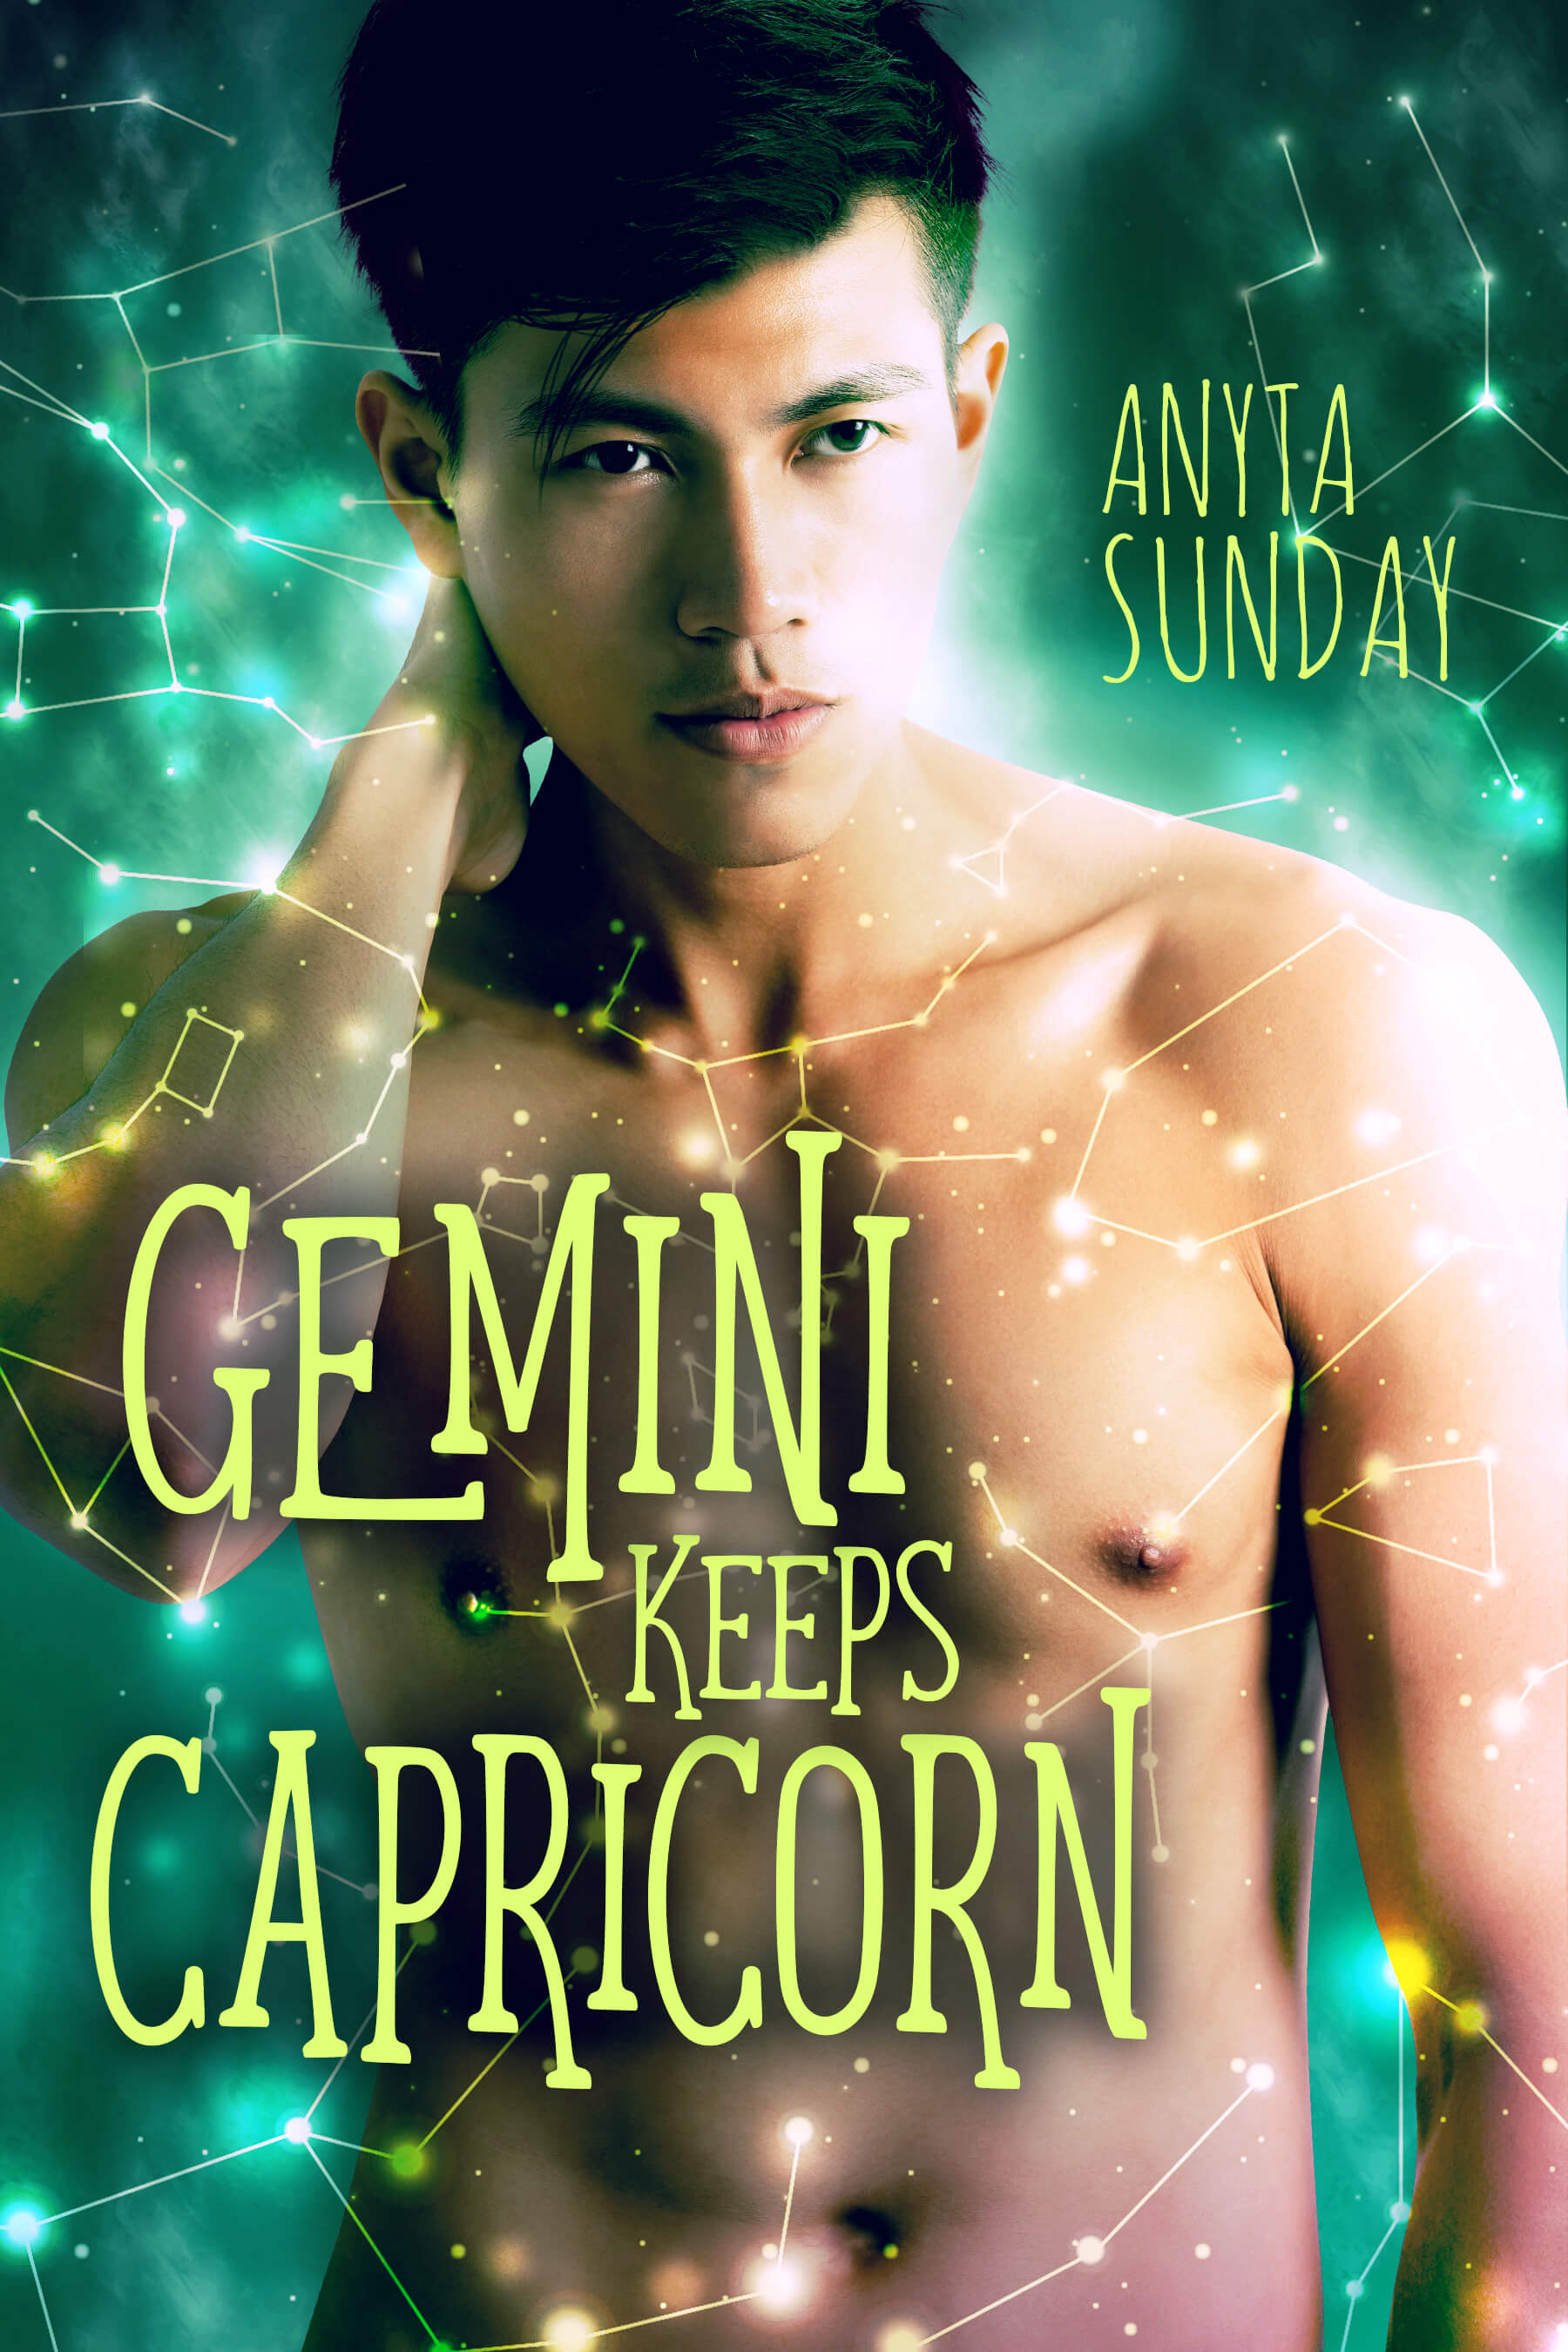 Guest Post: Gemini Keeps Capricorn by Anyta Sunday